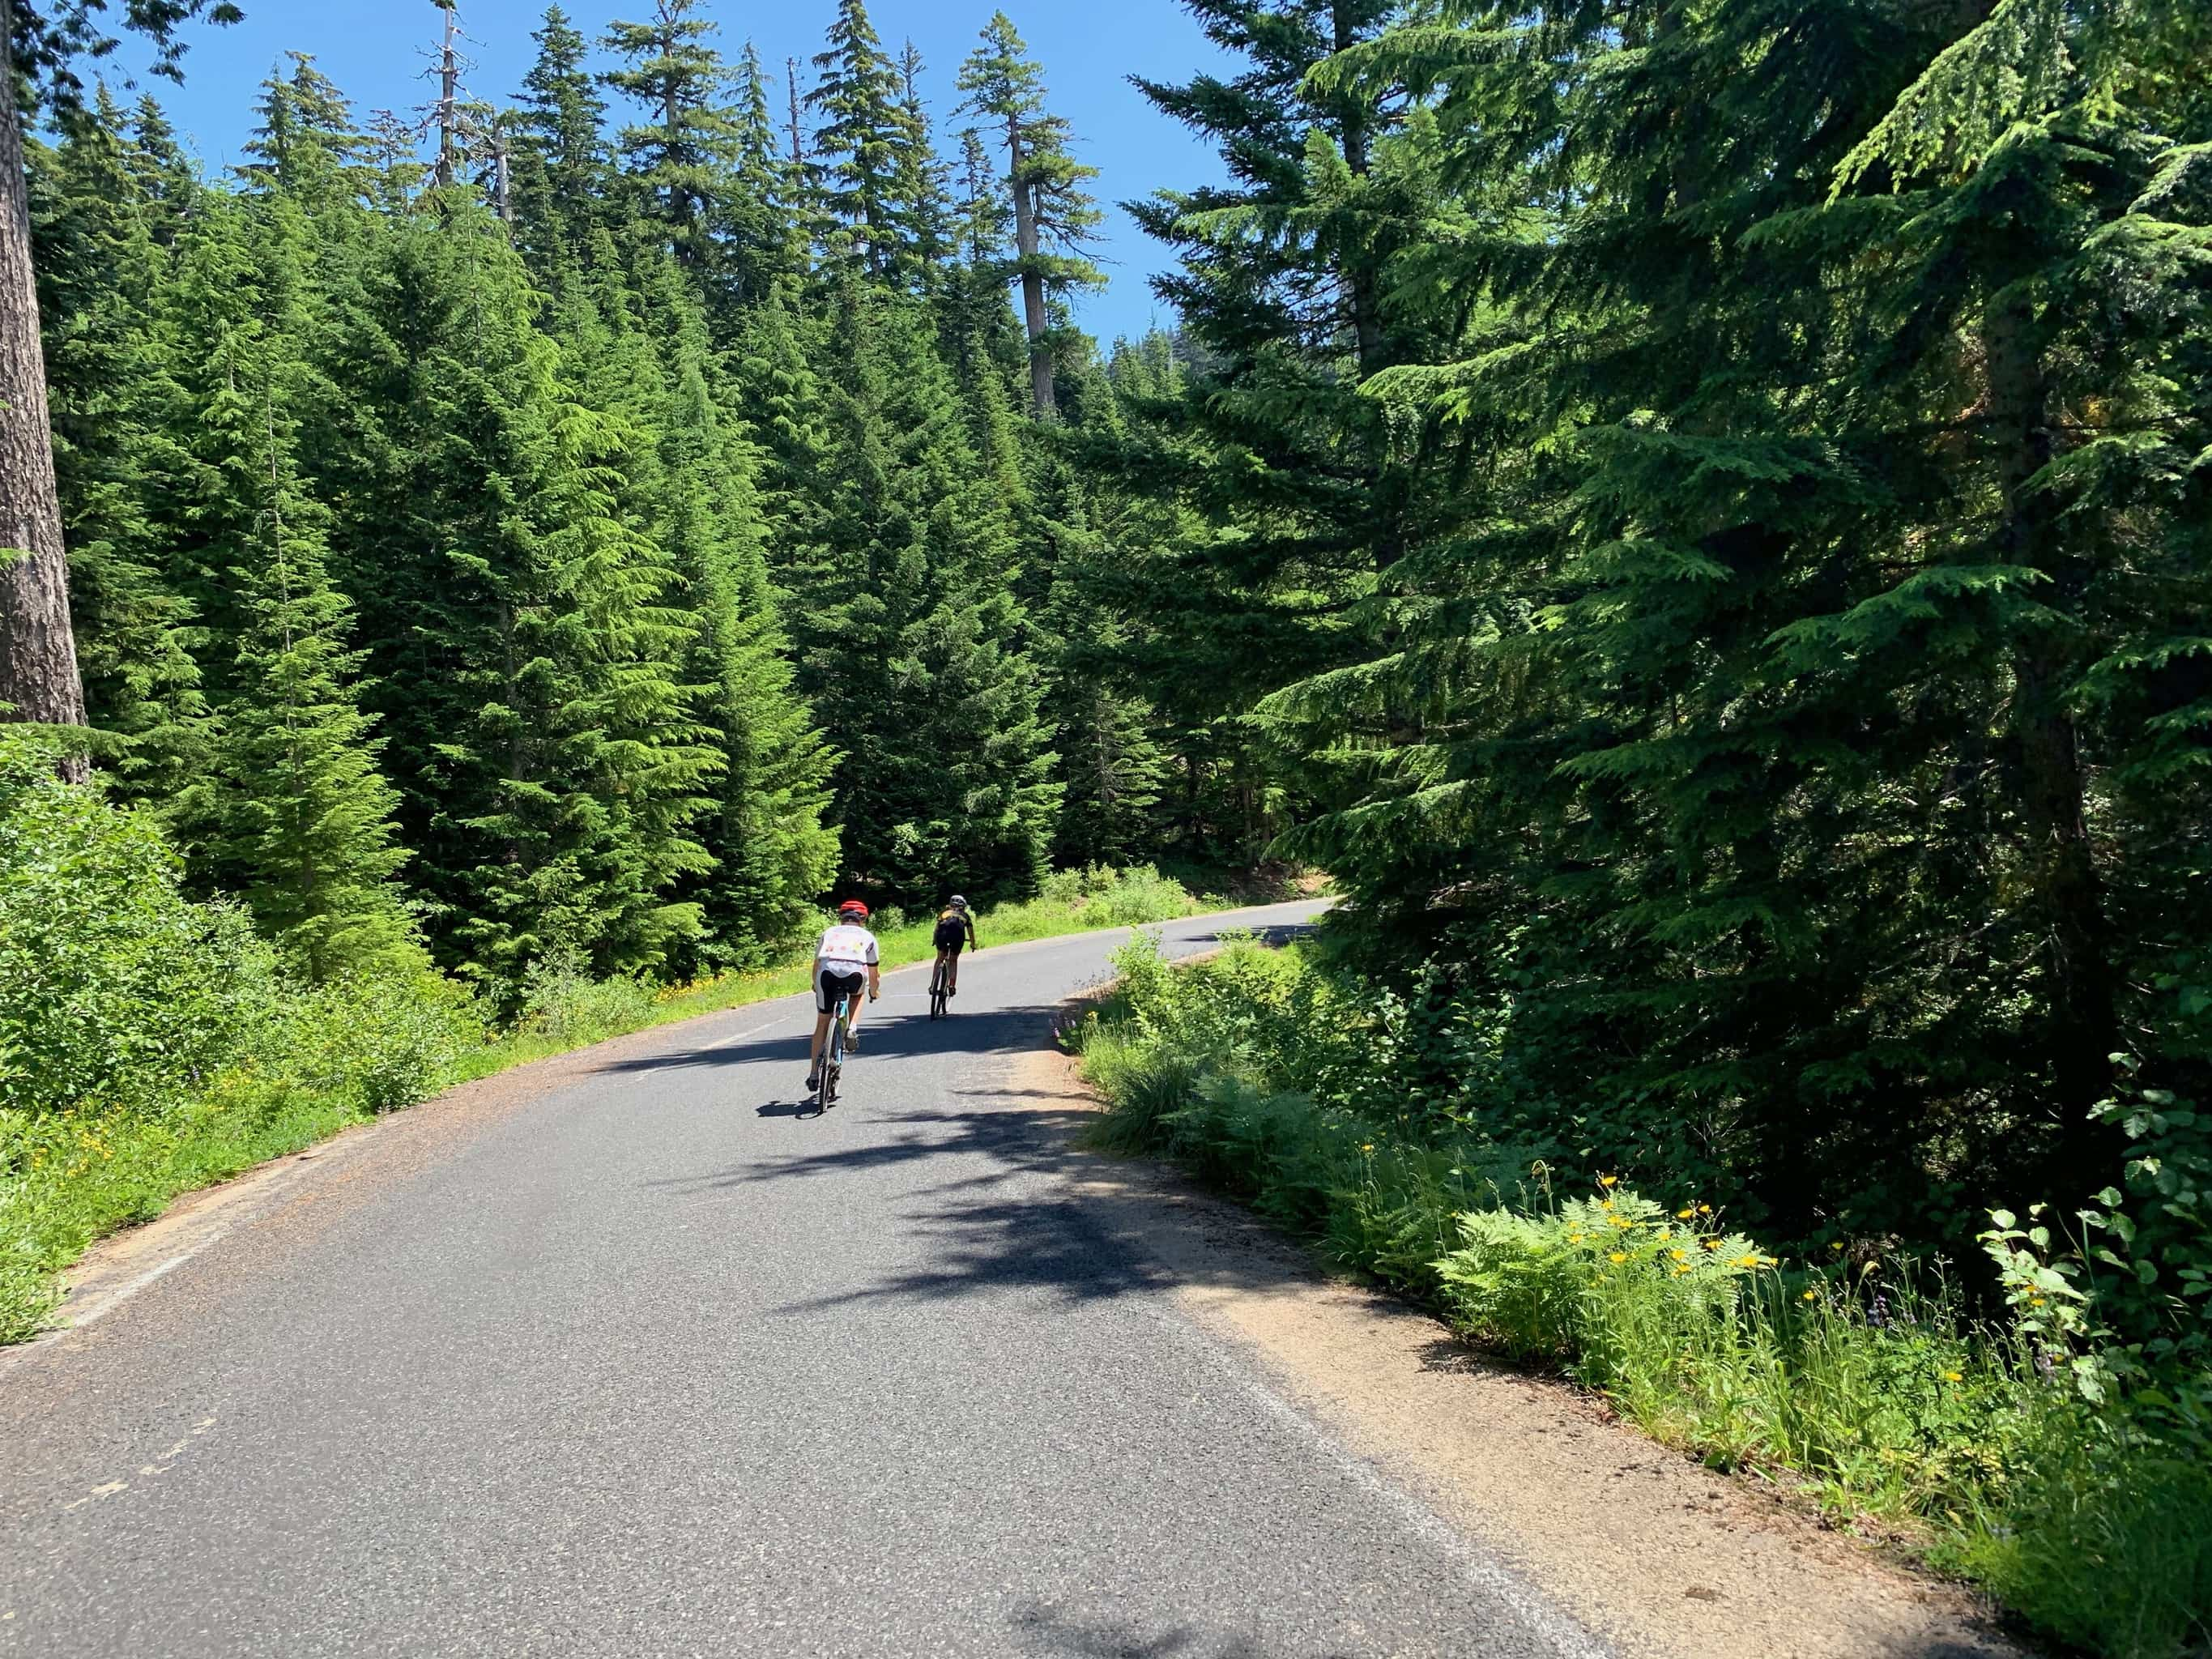 Bike rider descending paved portion of NF-54 in Gifford Pinchot National Forest.